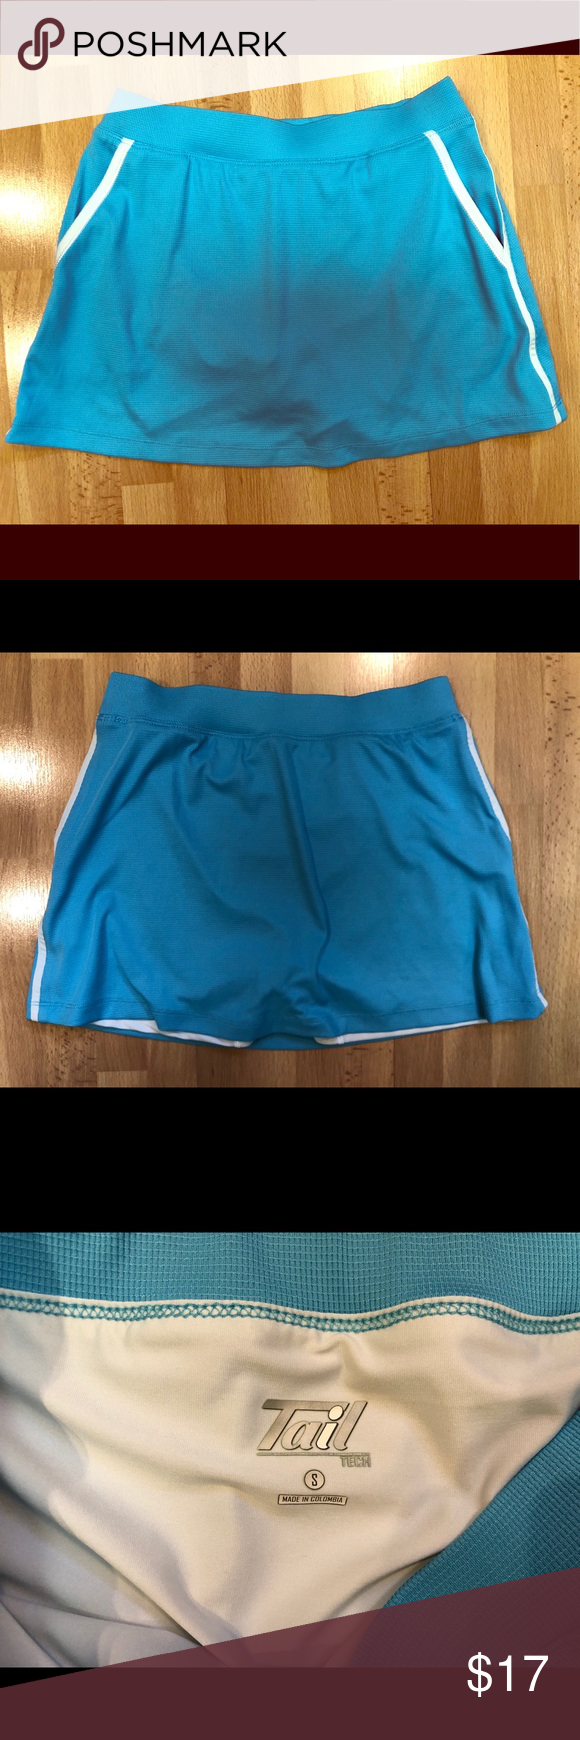 Tail Athletic Skort EUC Get this cool Skort for workouts or to just kick arounaroun